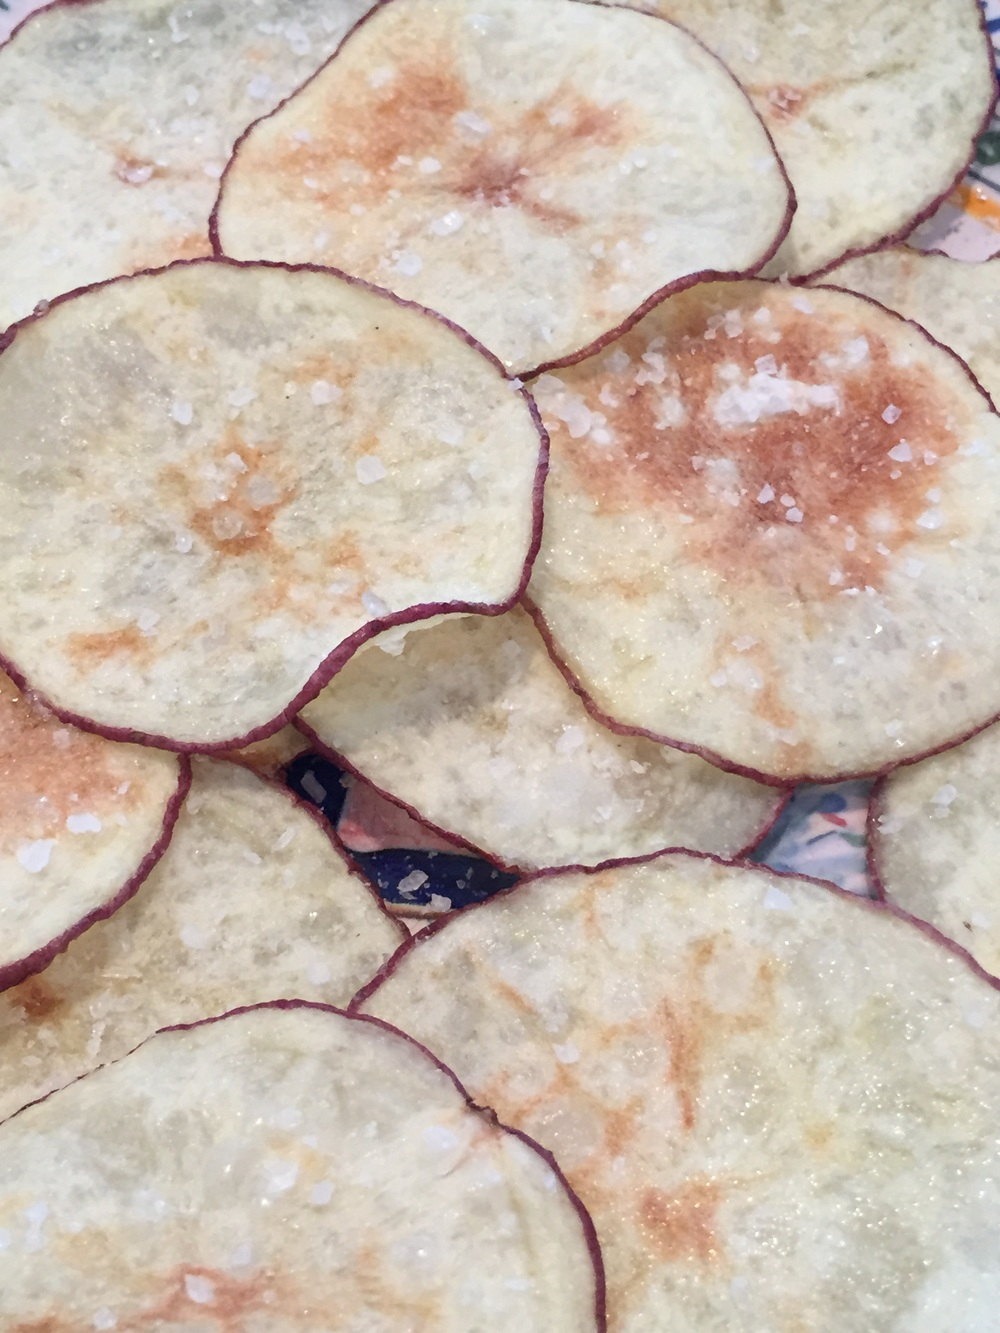 Skinny crunchy potato chips from the microwave via The Entertaining House